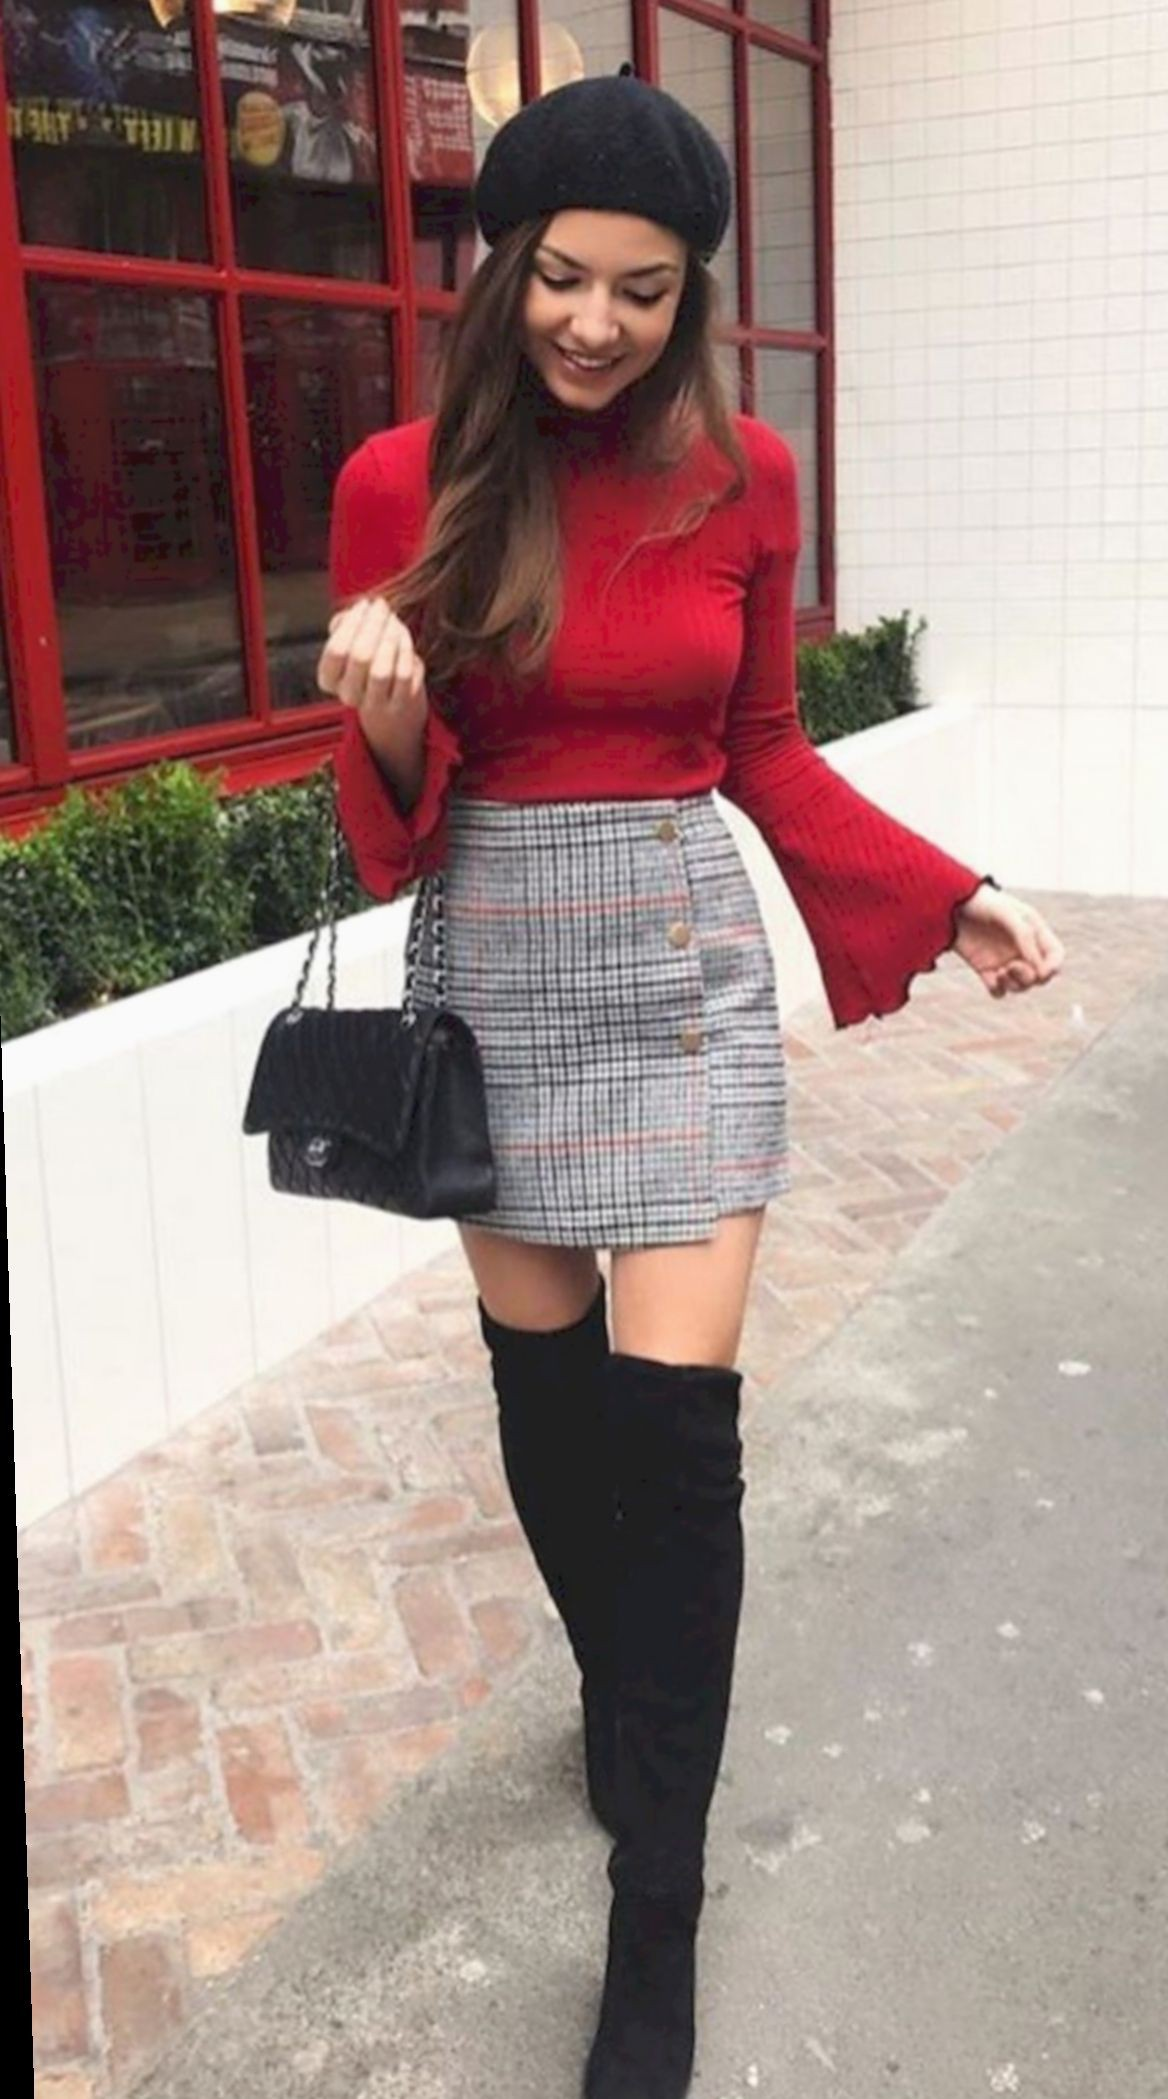 Plaid skirt winter outfit, Casual wear